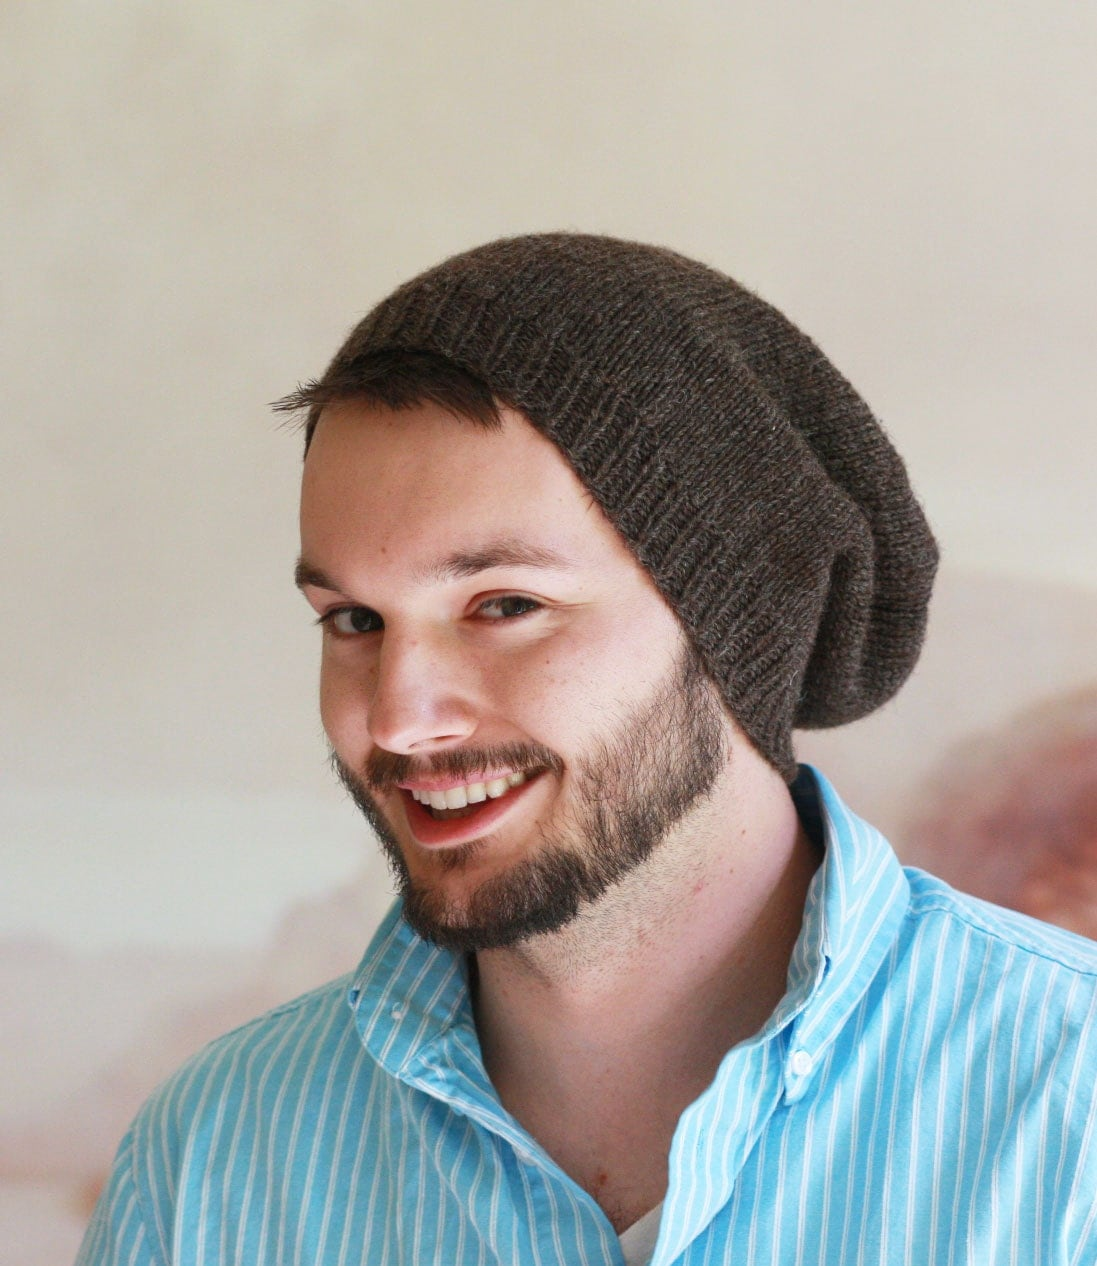 Product Features The Knit Beanie Cap is the perfect item for any winter wear.